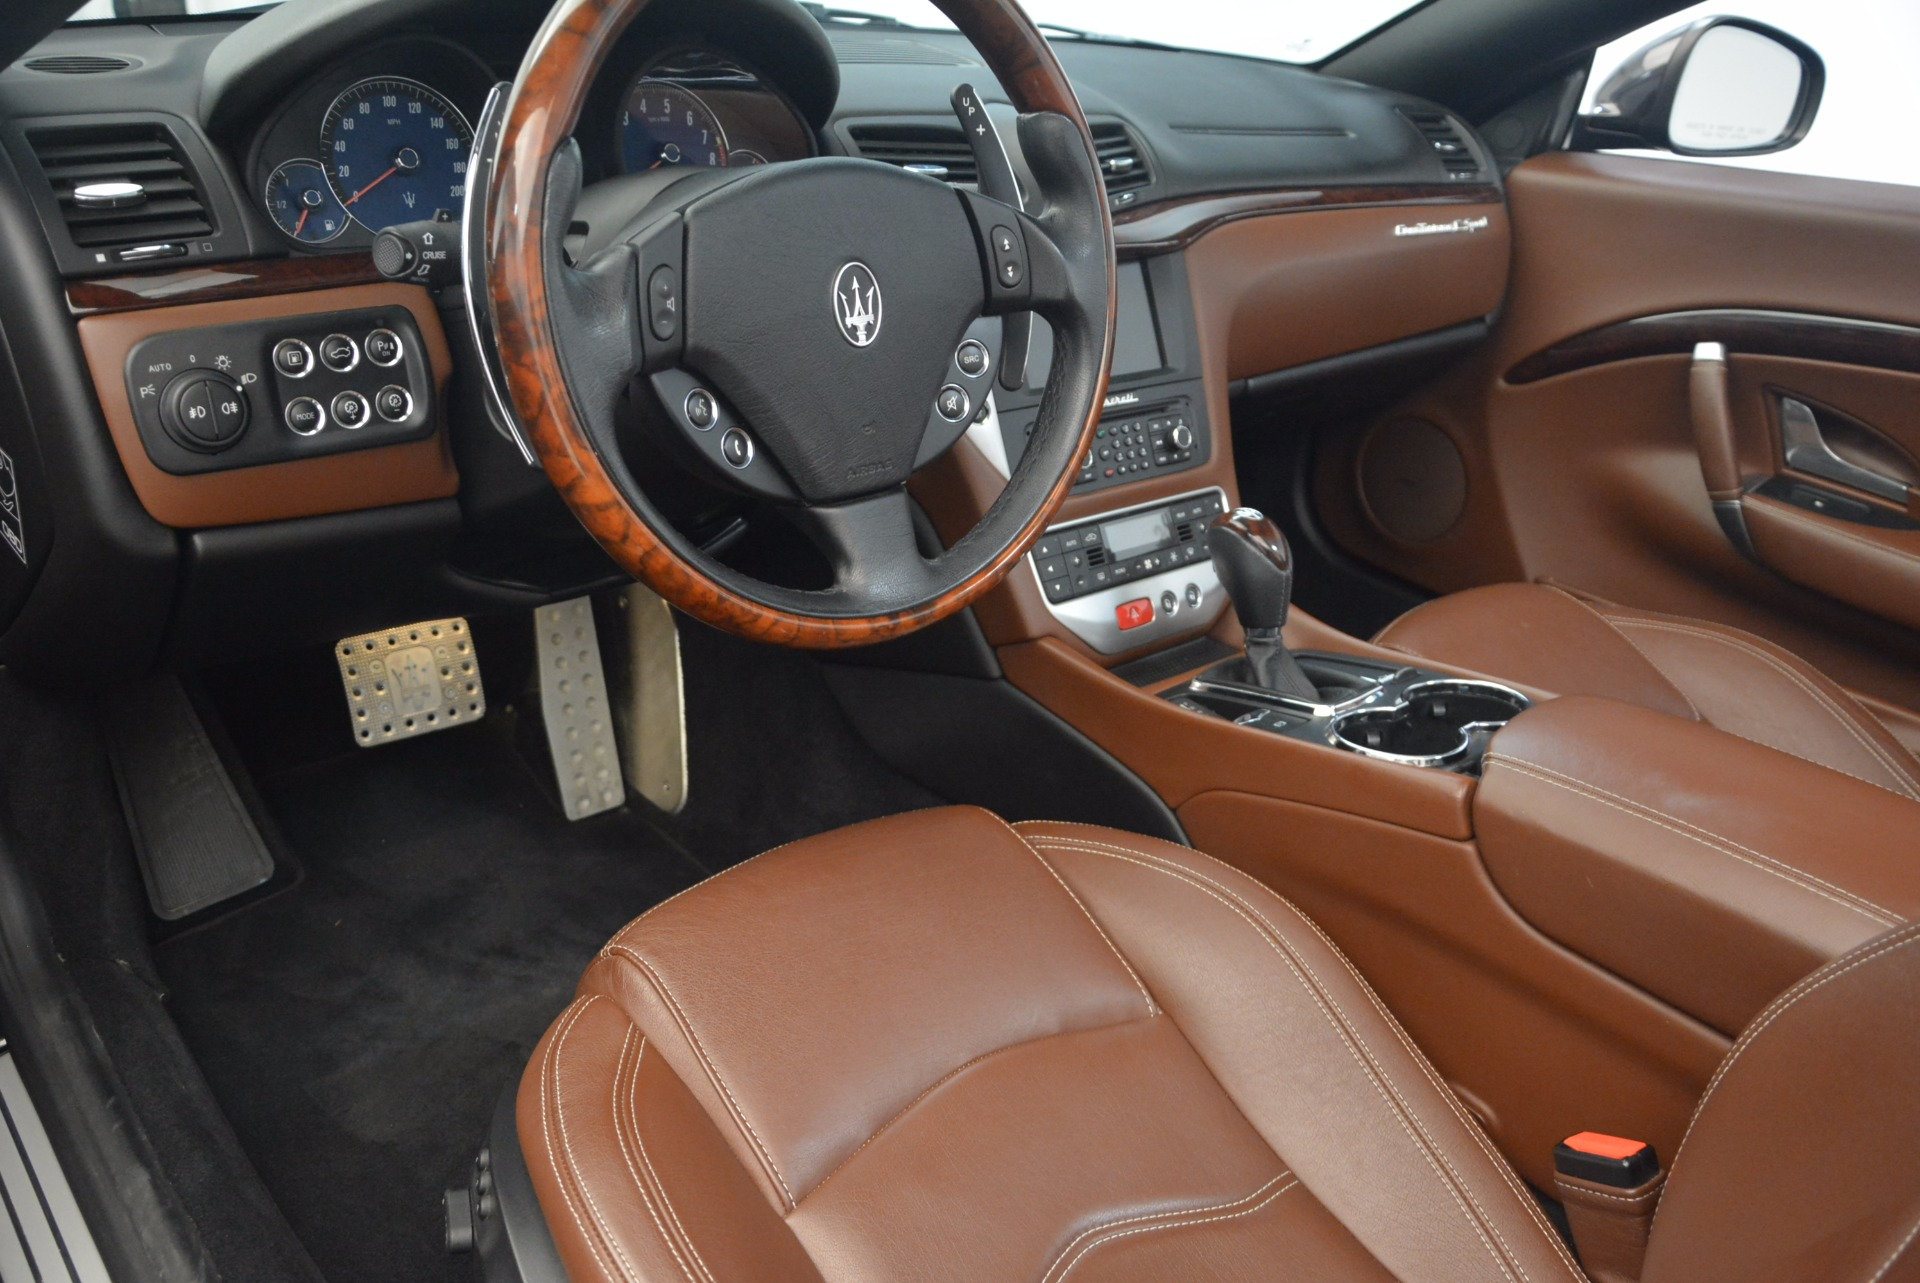 Used 2012 Maserati GranTurismo Sport For Sale In Westport, CT 1097_p21